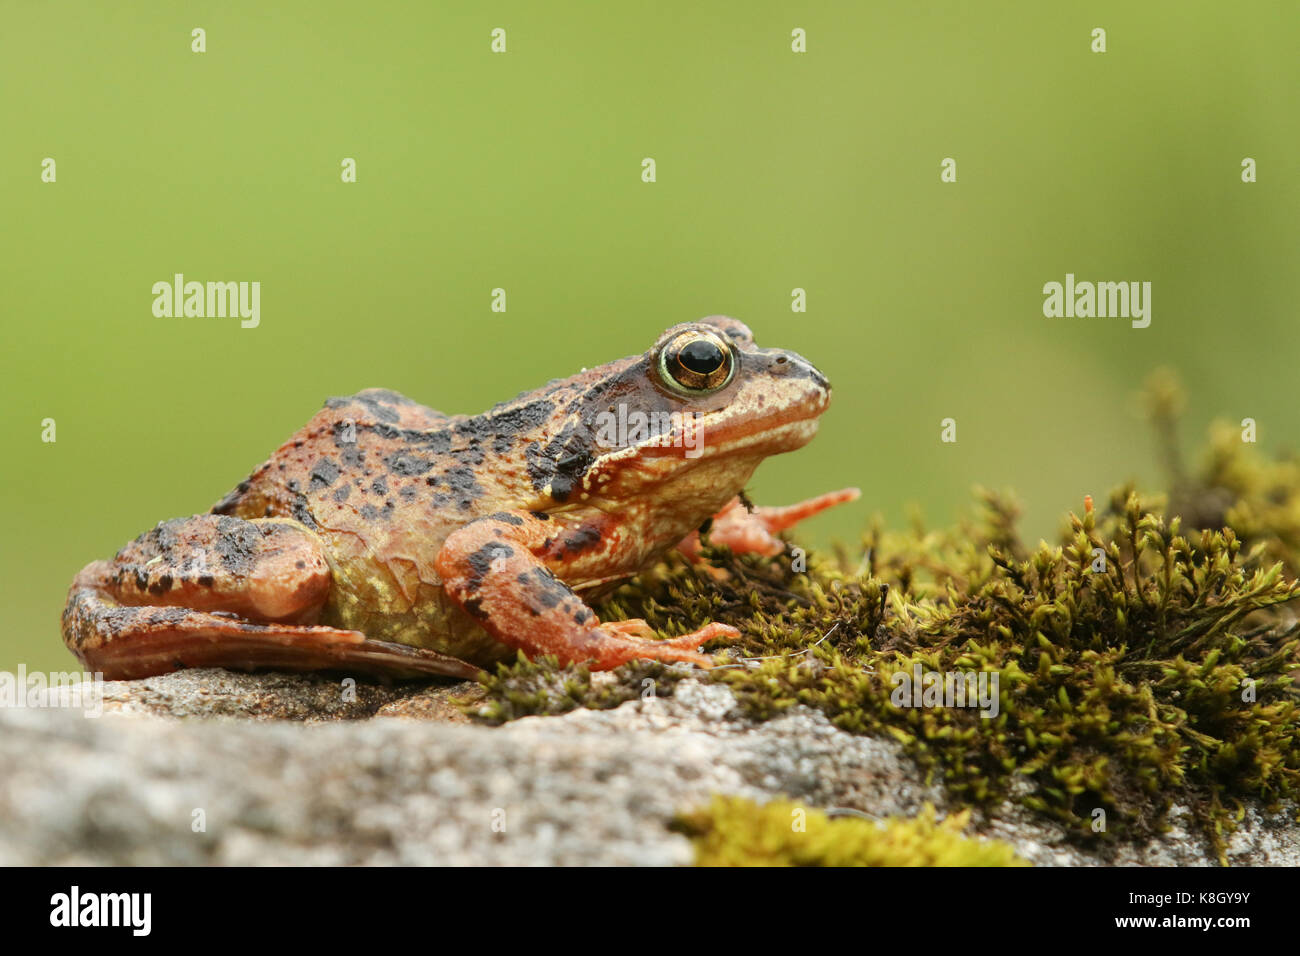 A Common Frog or European Common Frog (Rana temporaria) sitting on a rock covered in moss. - Stock Image